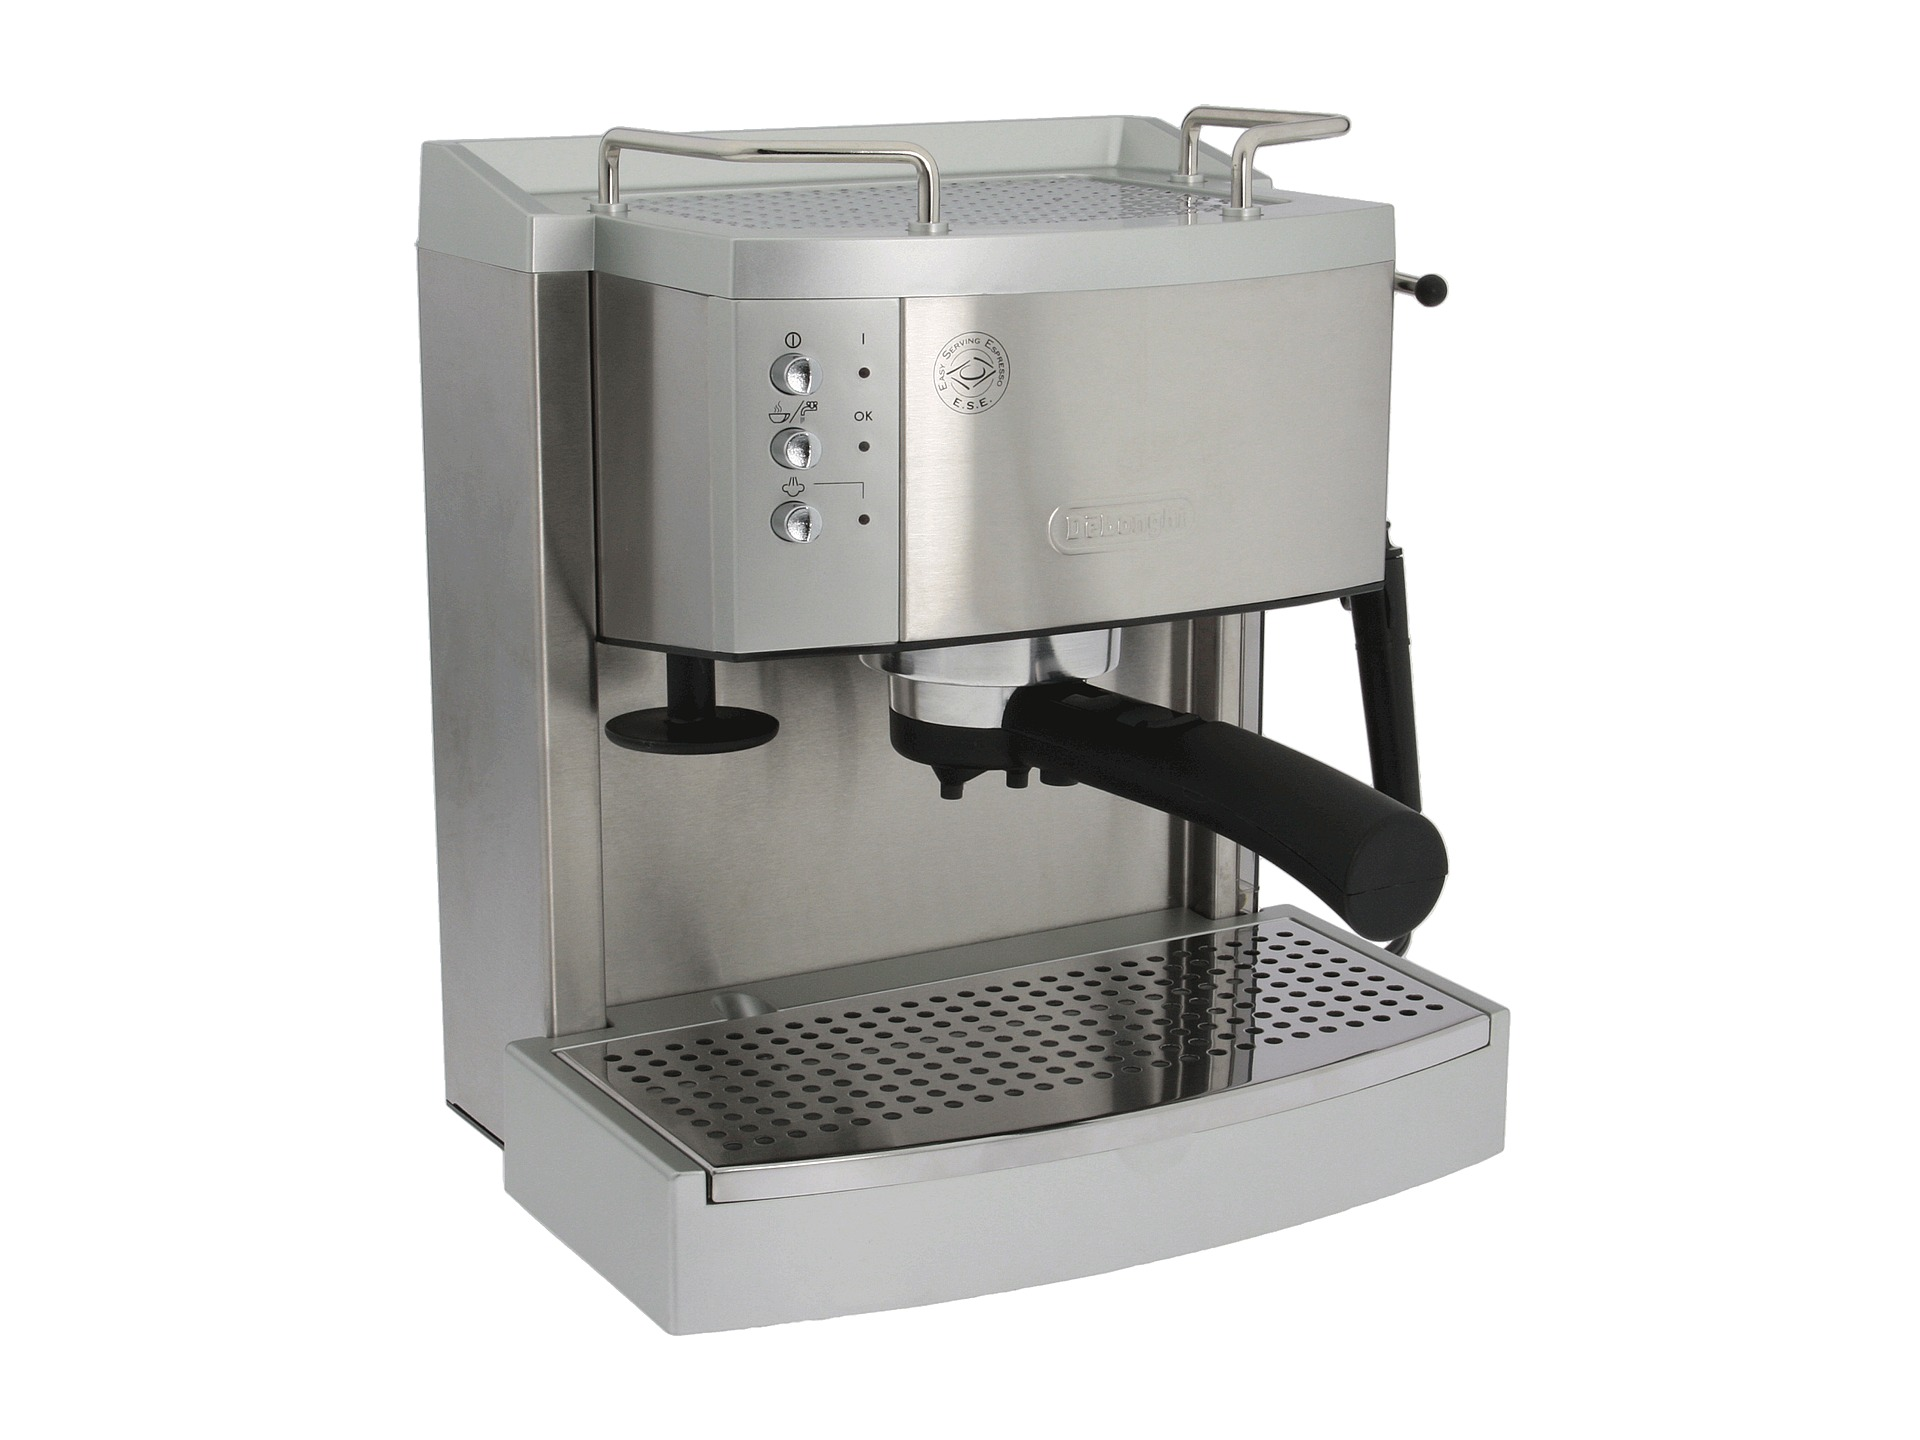 Delonghi Coffee Maker Stainless Steel Espresso : Delonghi Ec702 Pump Espresso Maker Stainless Steel Shipped Free at Zappos